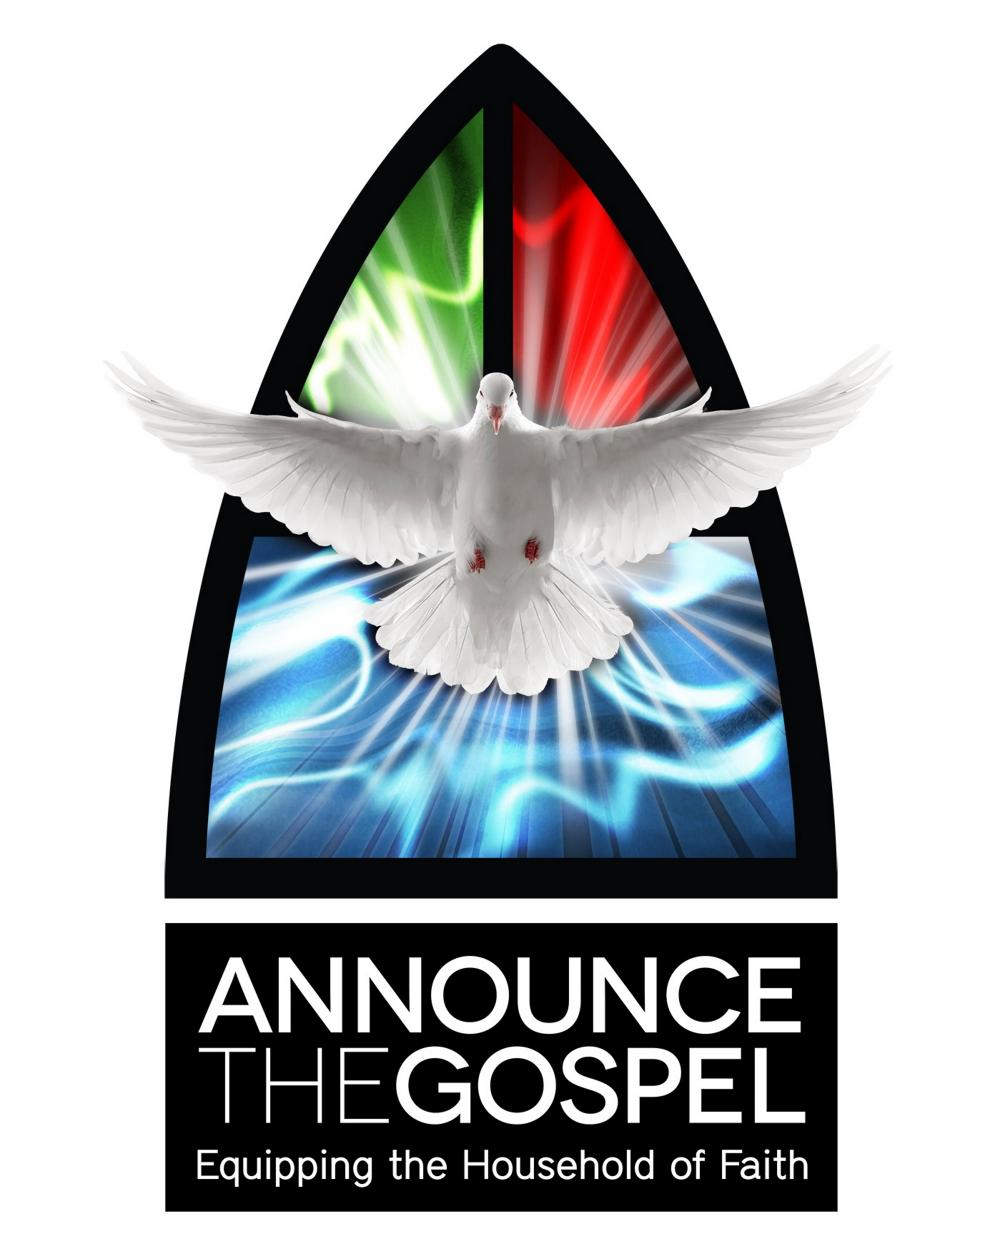 Announce the Gospel, Equipping the Household of Faith